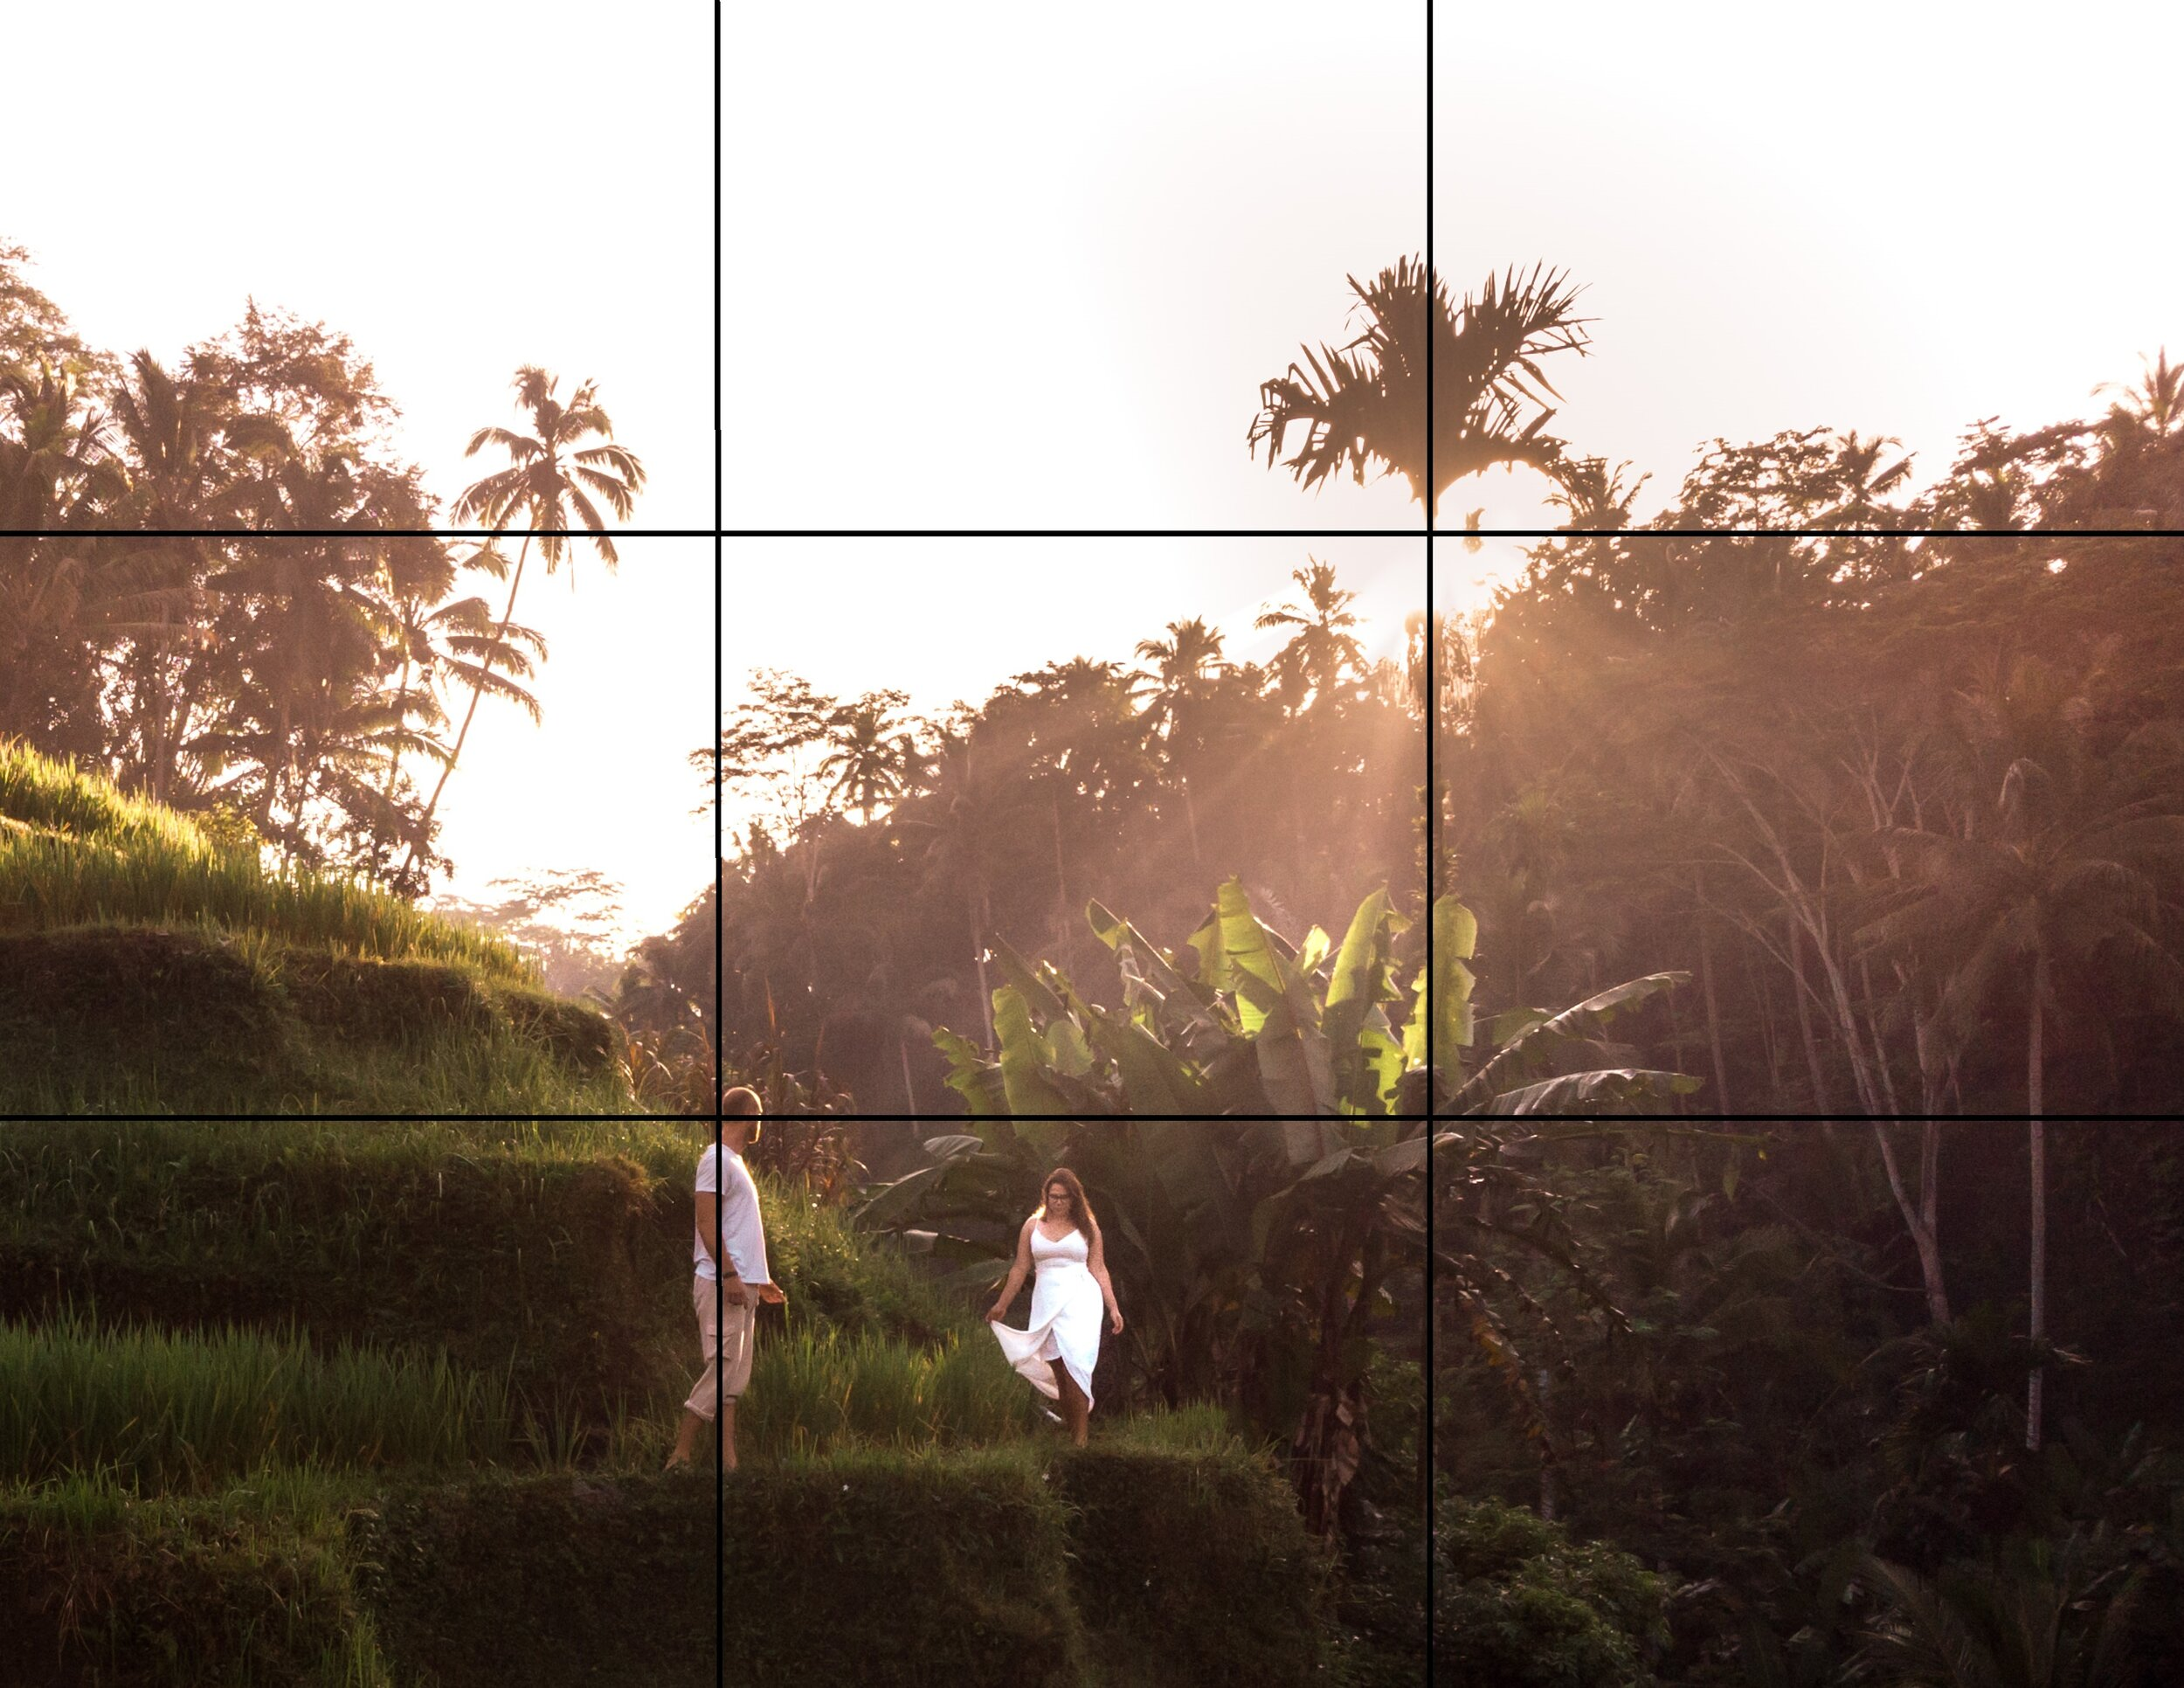 Rule of Thirds Grid Bali Travel drone photography guide for beginners